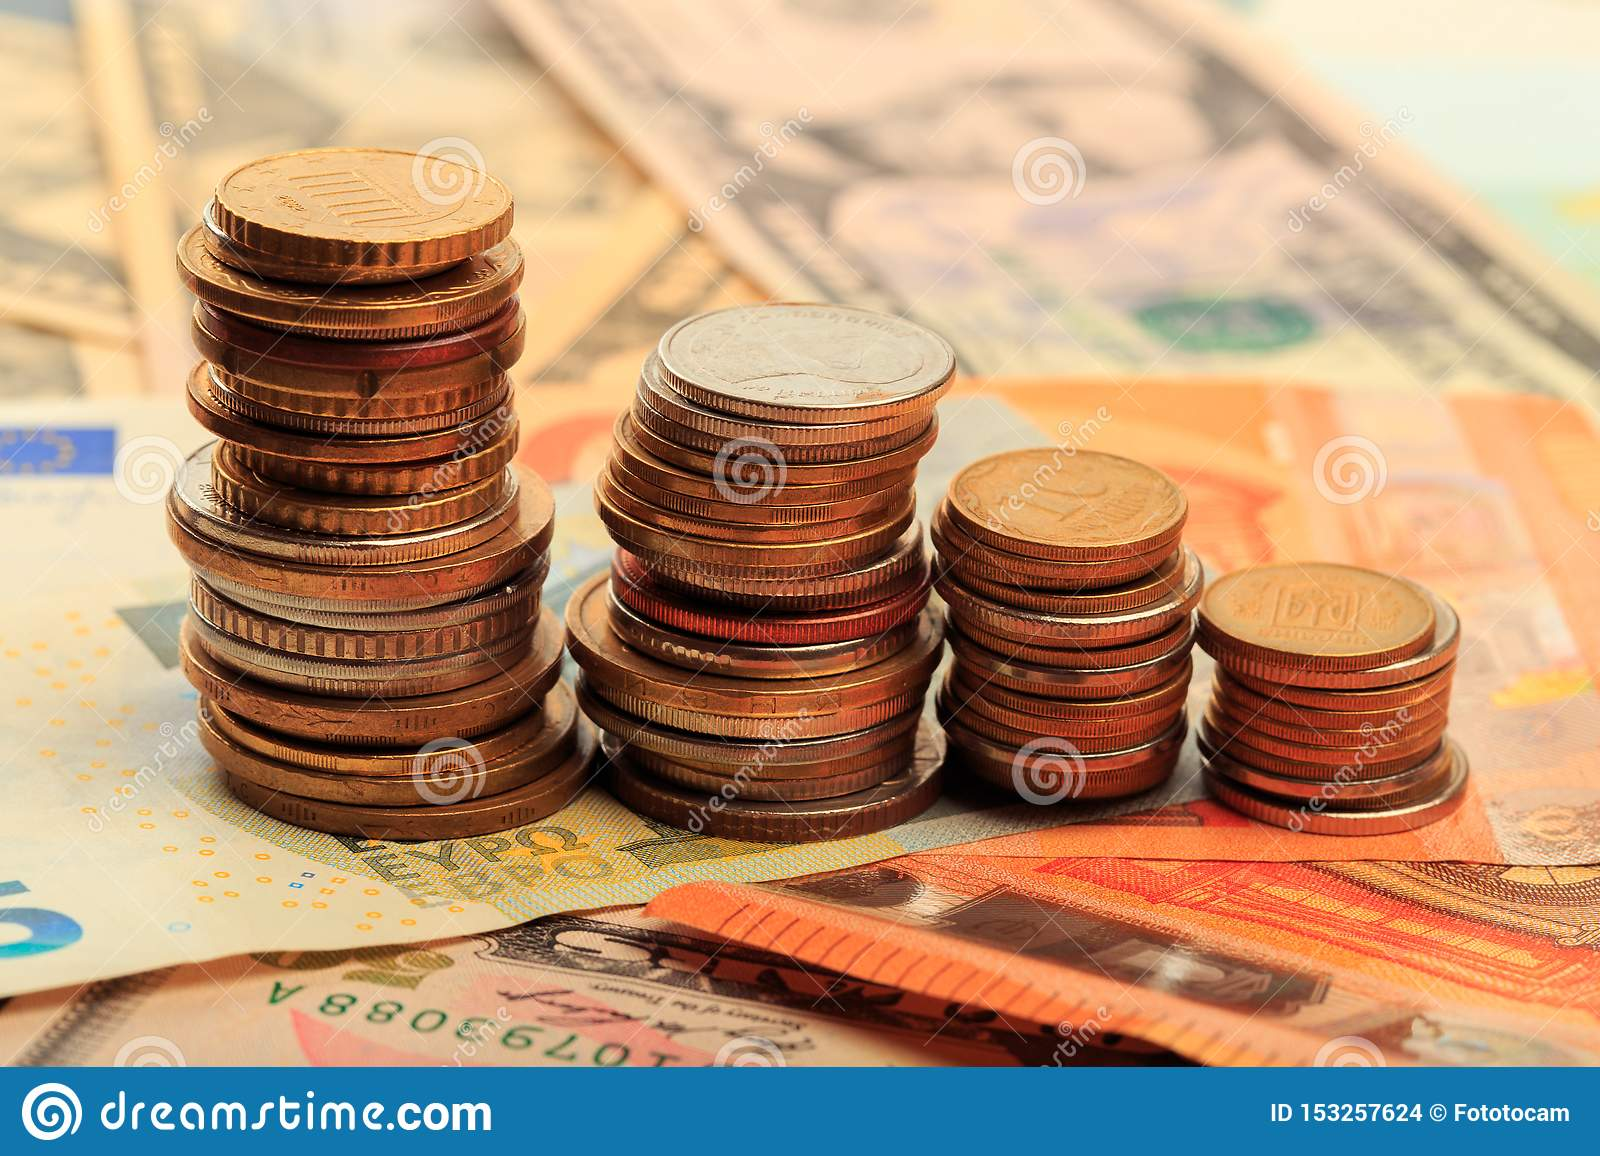 Financial business concept combination with coins, money, calculator and pen